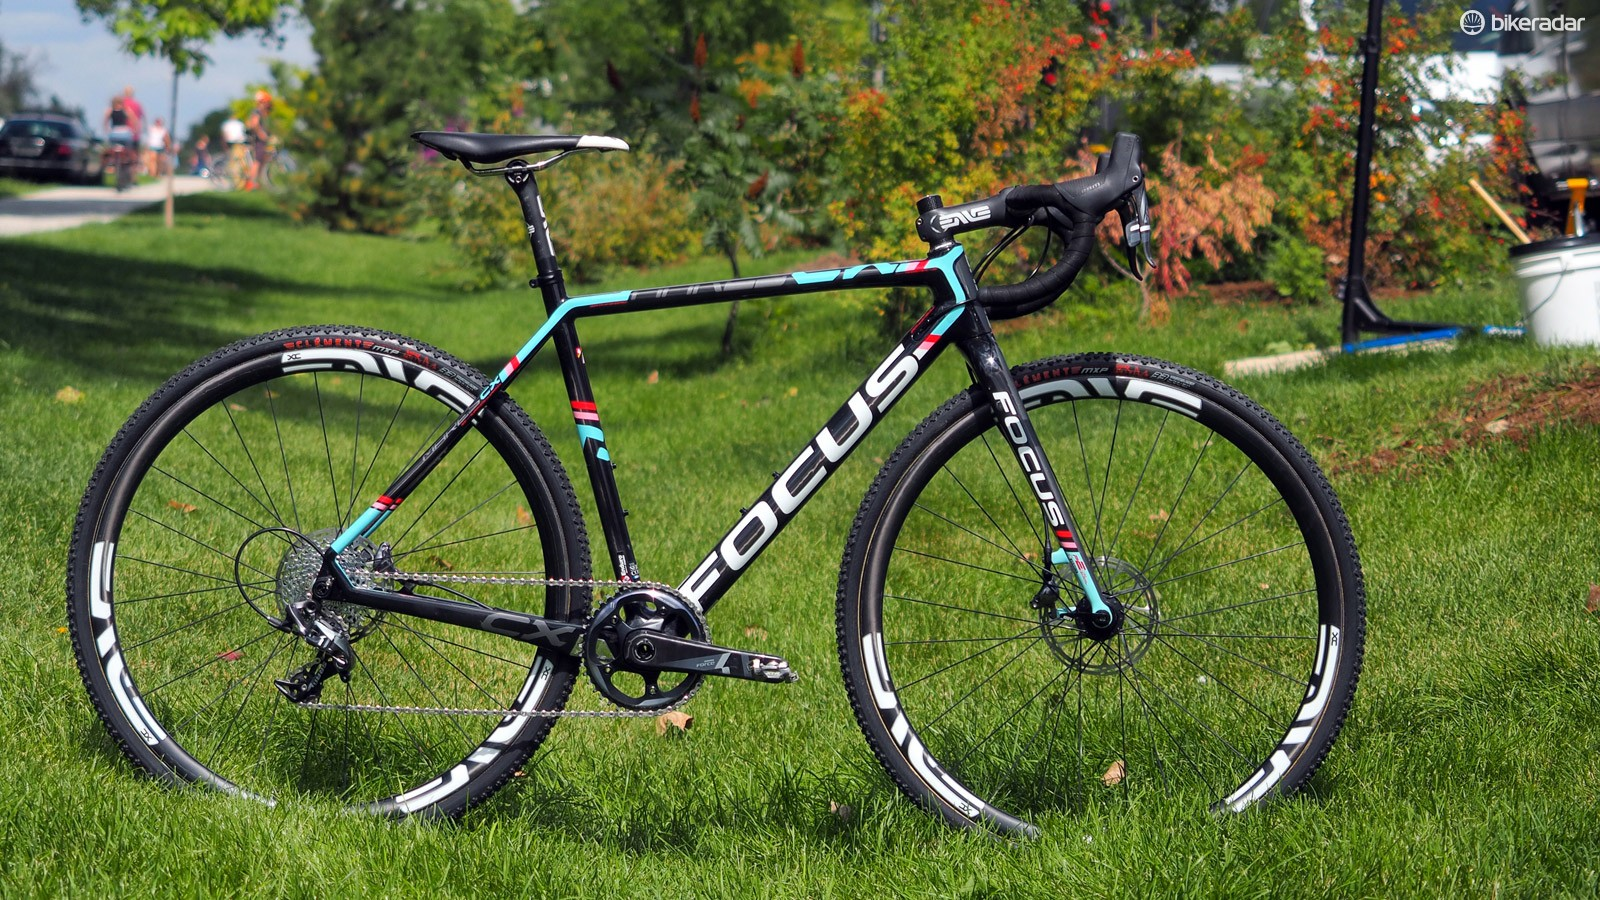 Allen Krughoff (Noosa Professional Cycling Team) has been racing on the new Focus Mares CX this season and is hoping for glory at the upcoming US national championships in Austin, Texas